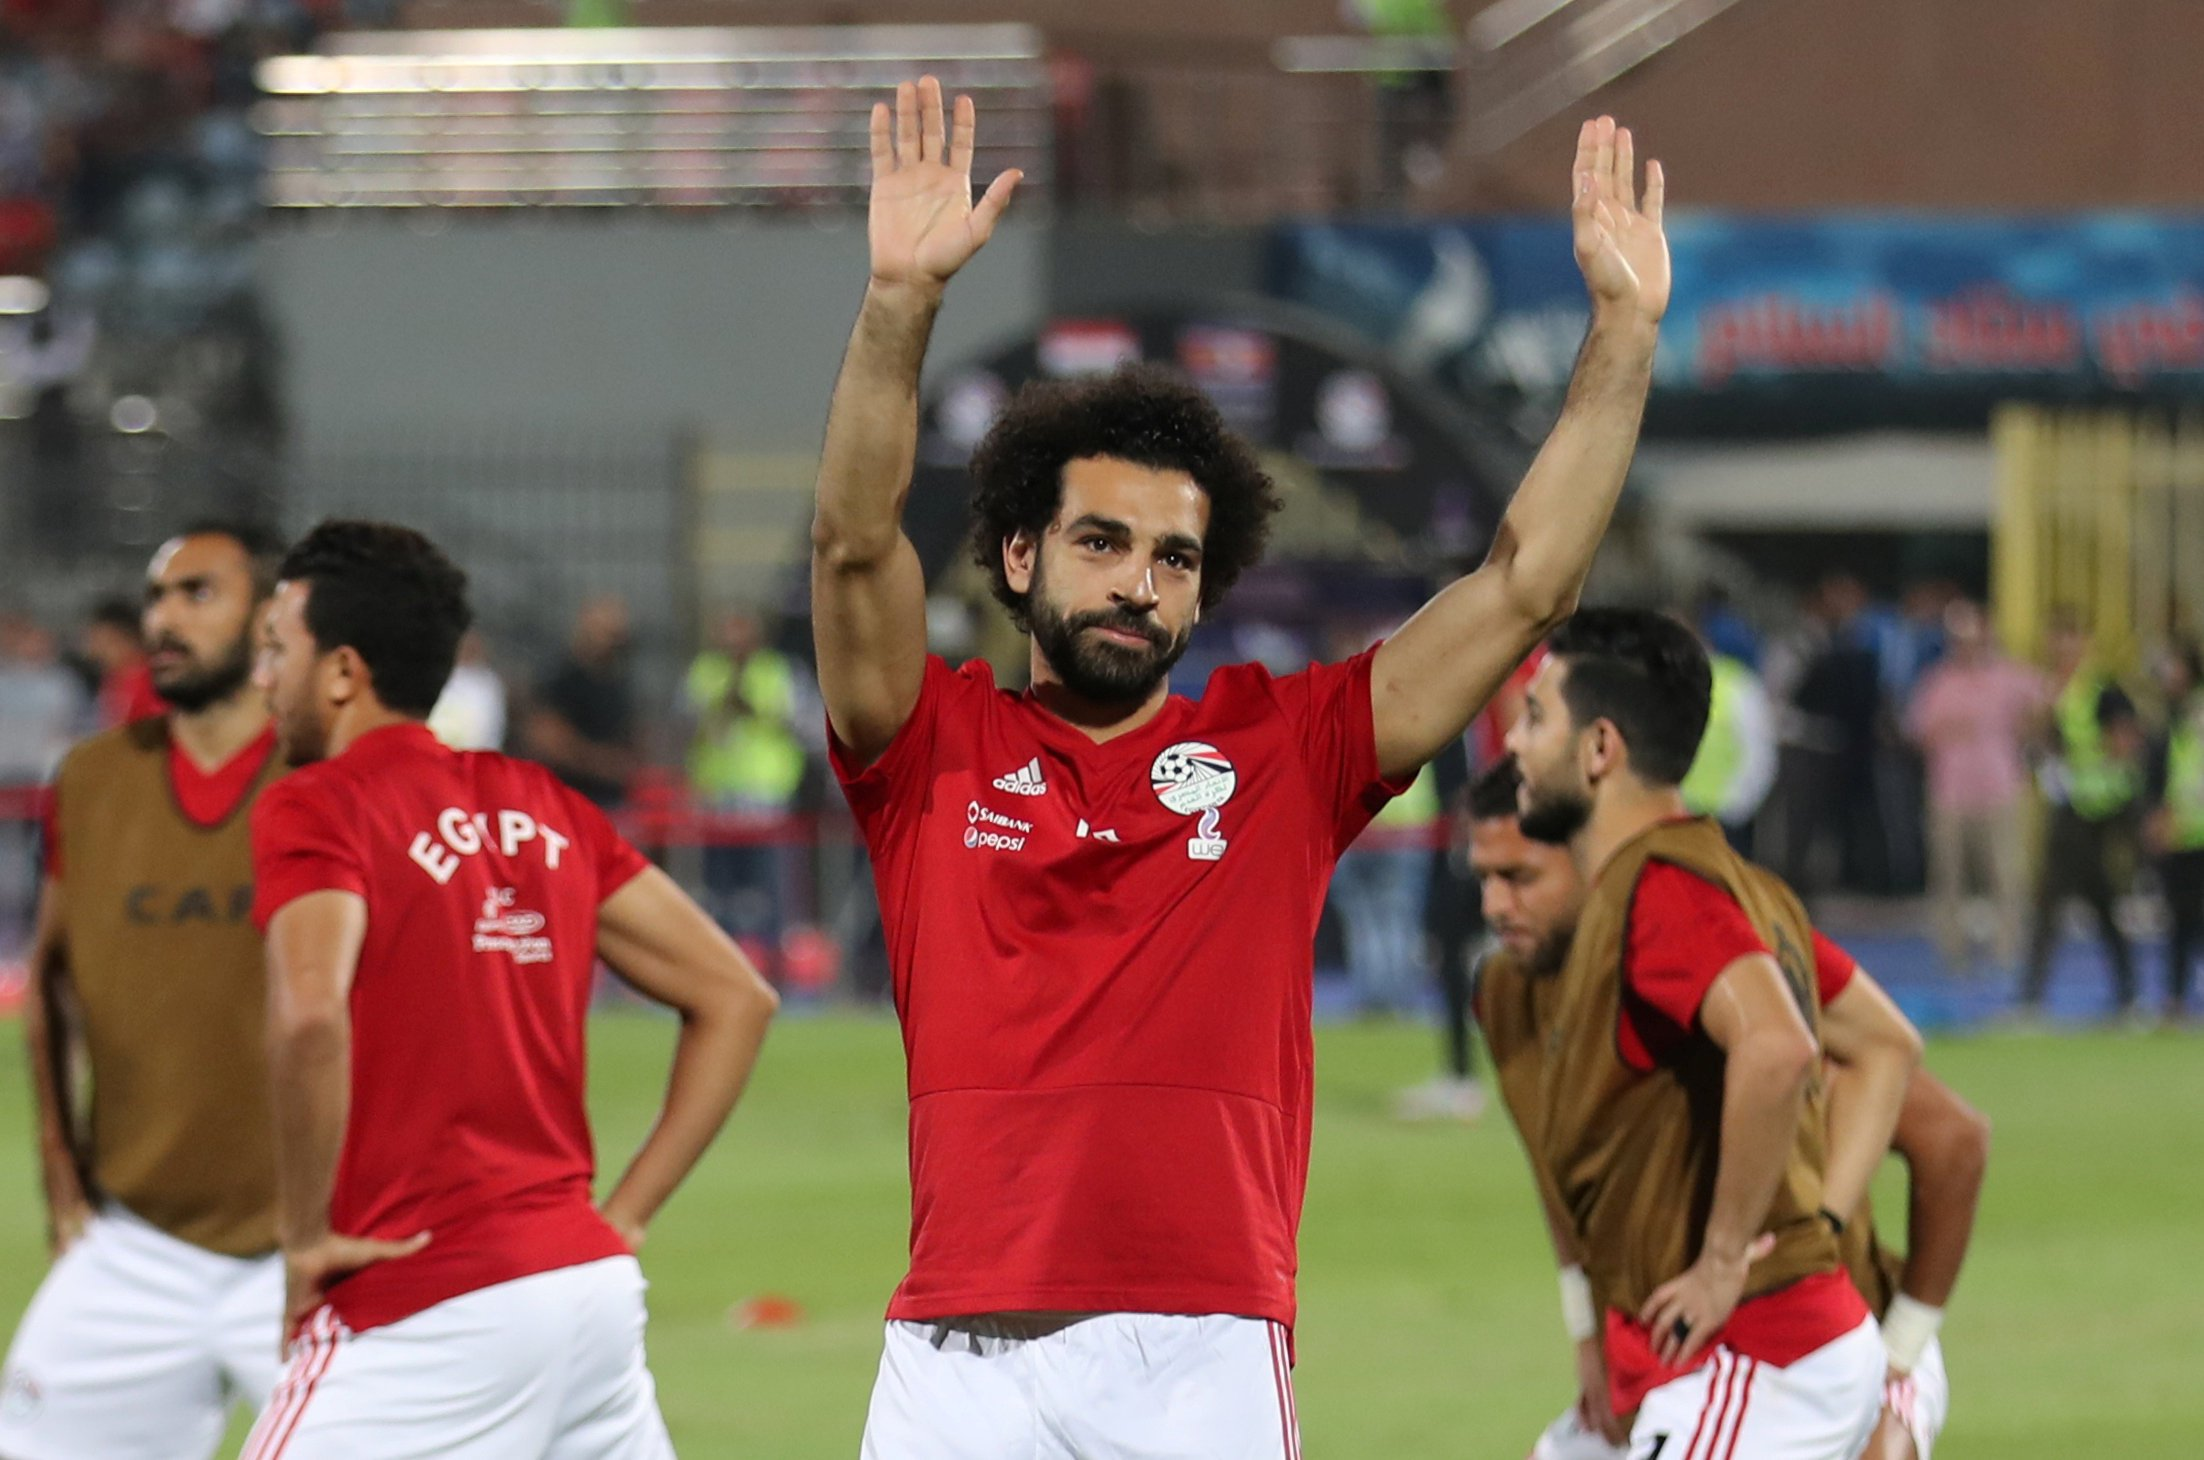 Soccer Football - African Nations Cup Qualifier - Egypt v Swaziland - Al-Salam Stadium, Cairo, Egypt - October 12, 2018 Egypt's Mohamed Salah during the warm up before the match REUTERS/Mohamed Abd El Ghany